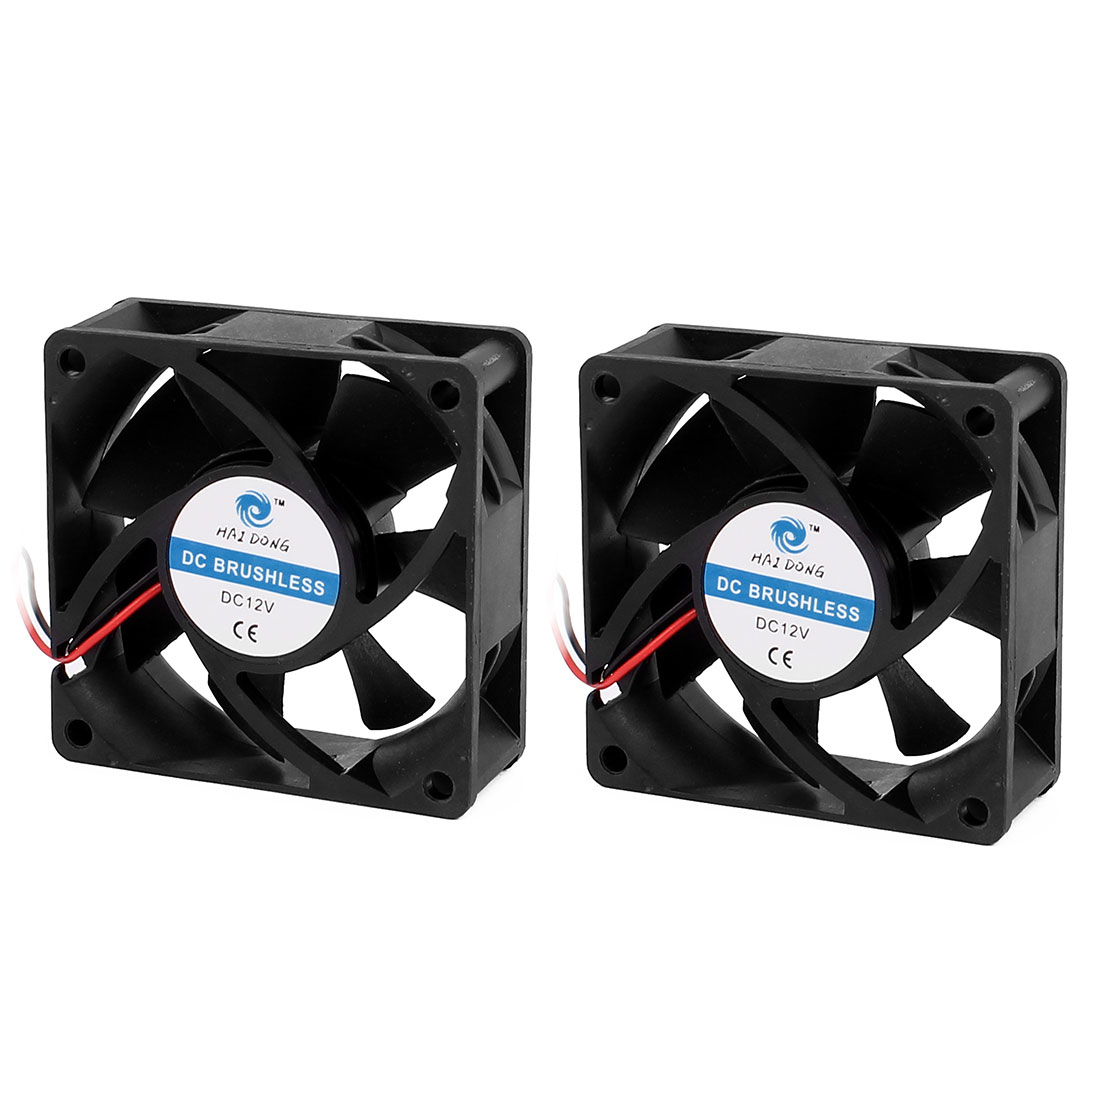 70 x 70 x 25mm Brushless Sleeve Cooling Fan DC 12V for Computer Case CPU Black 2Pcs